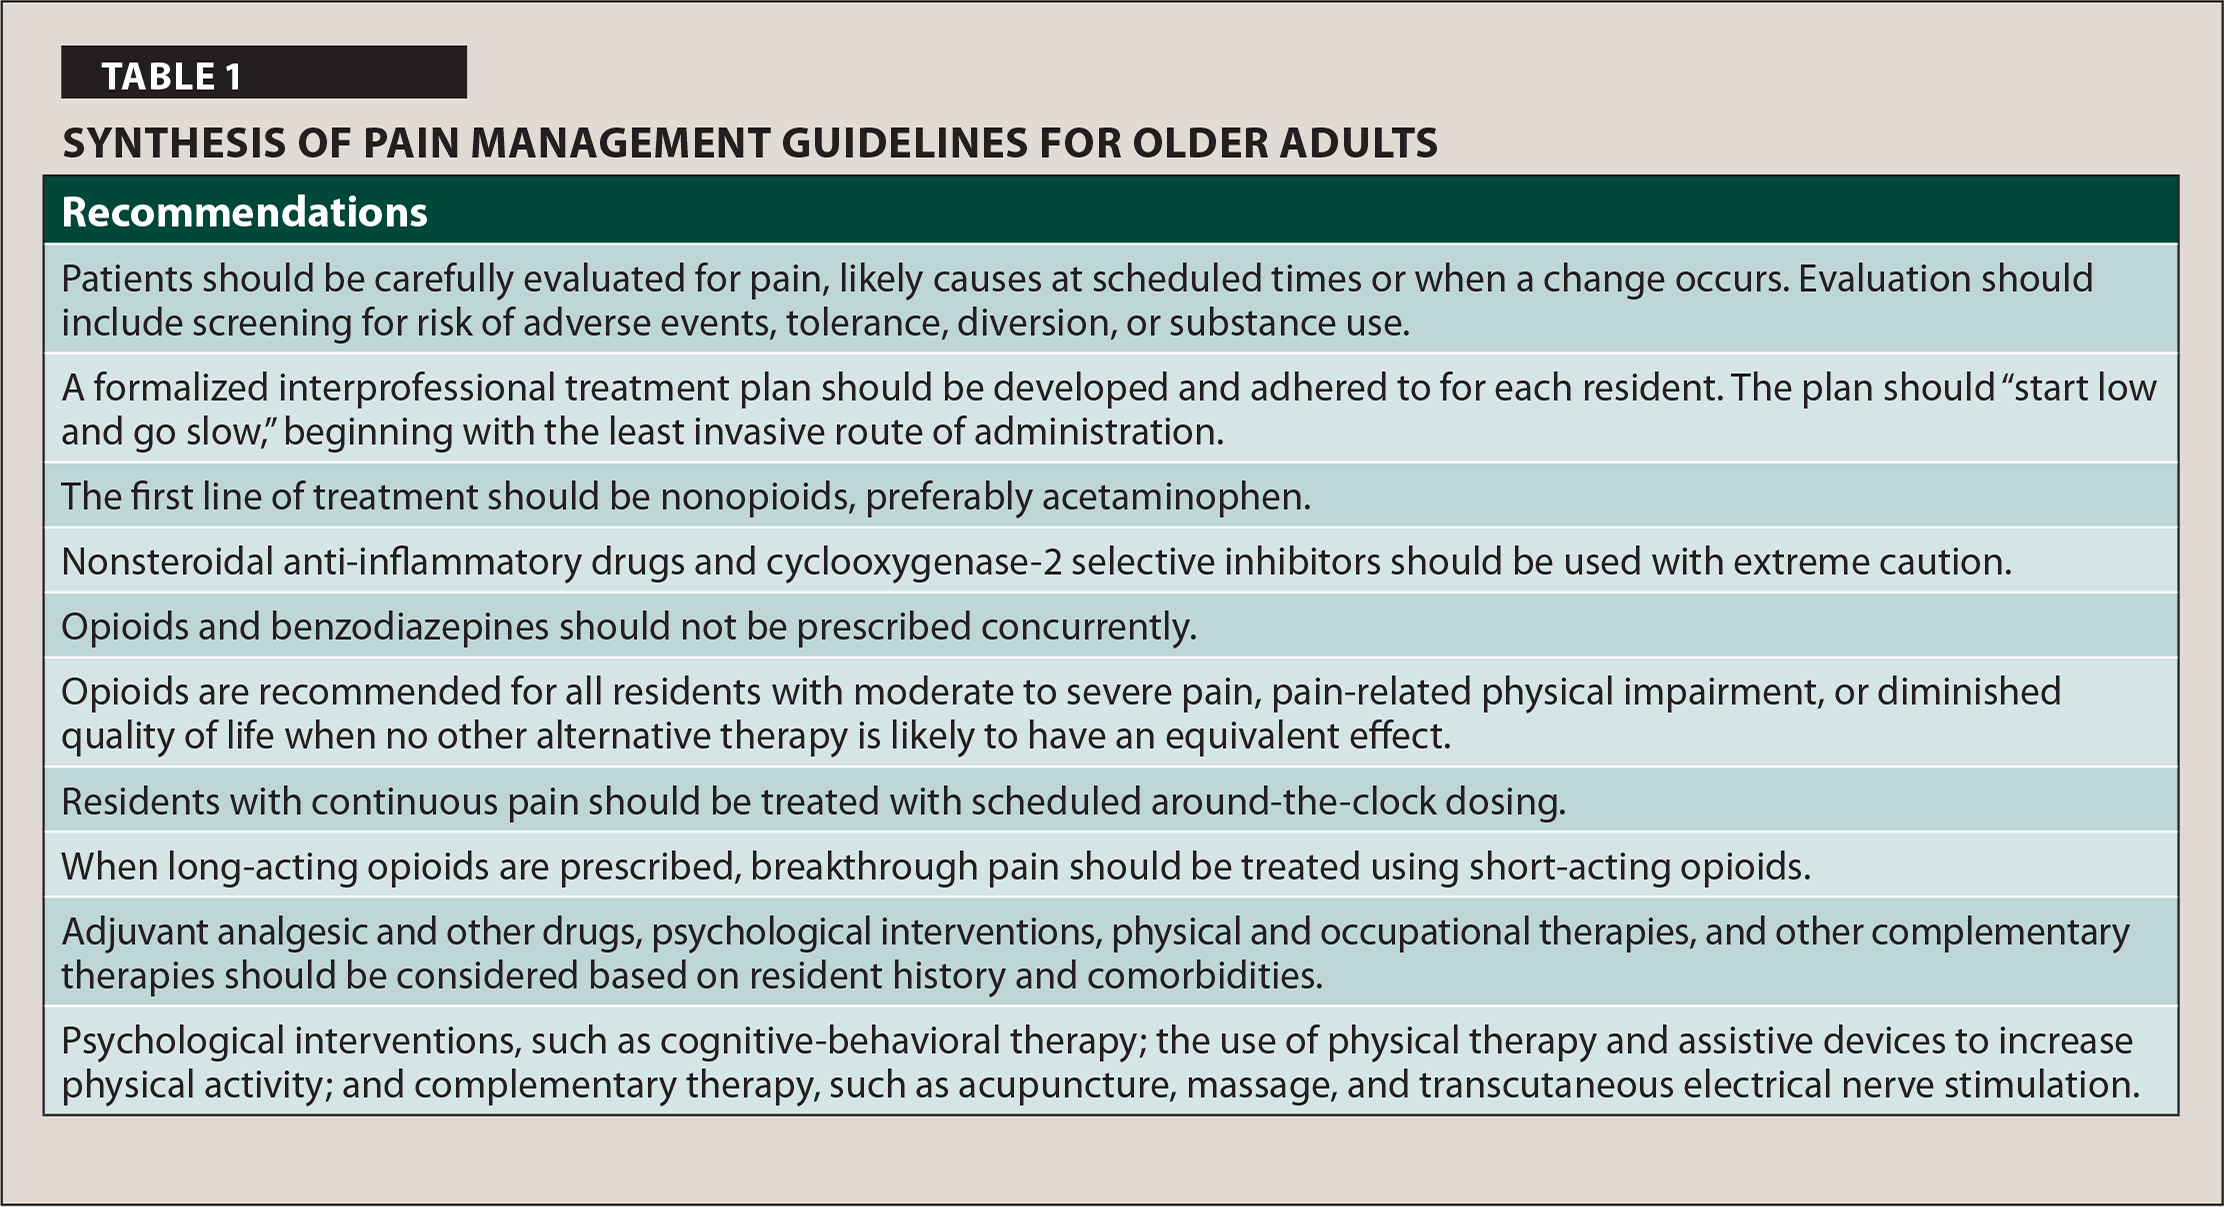 Synthesis of Pain Management Guidelines for Older Adults